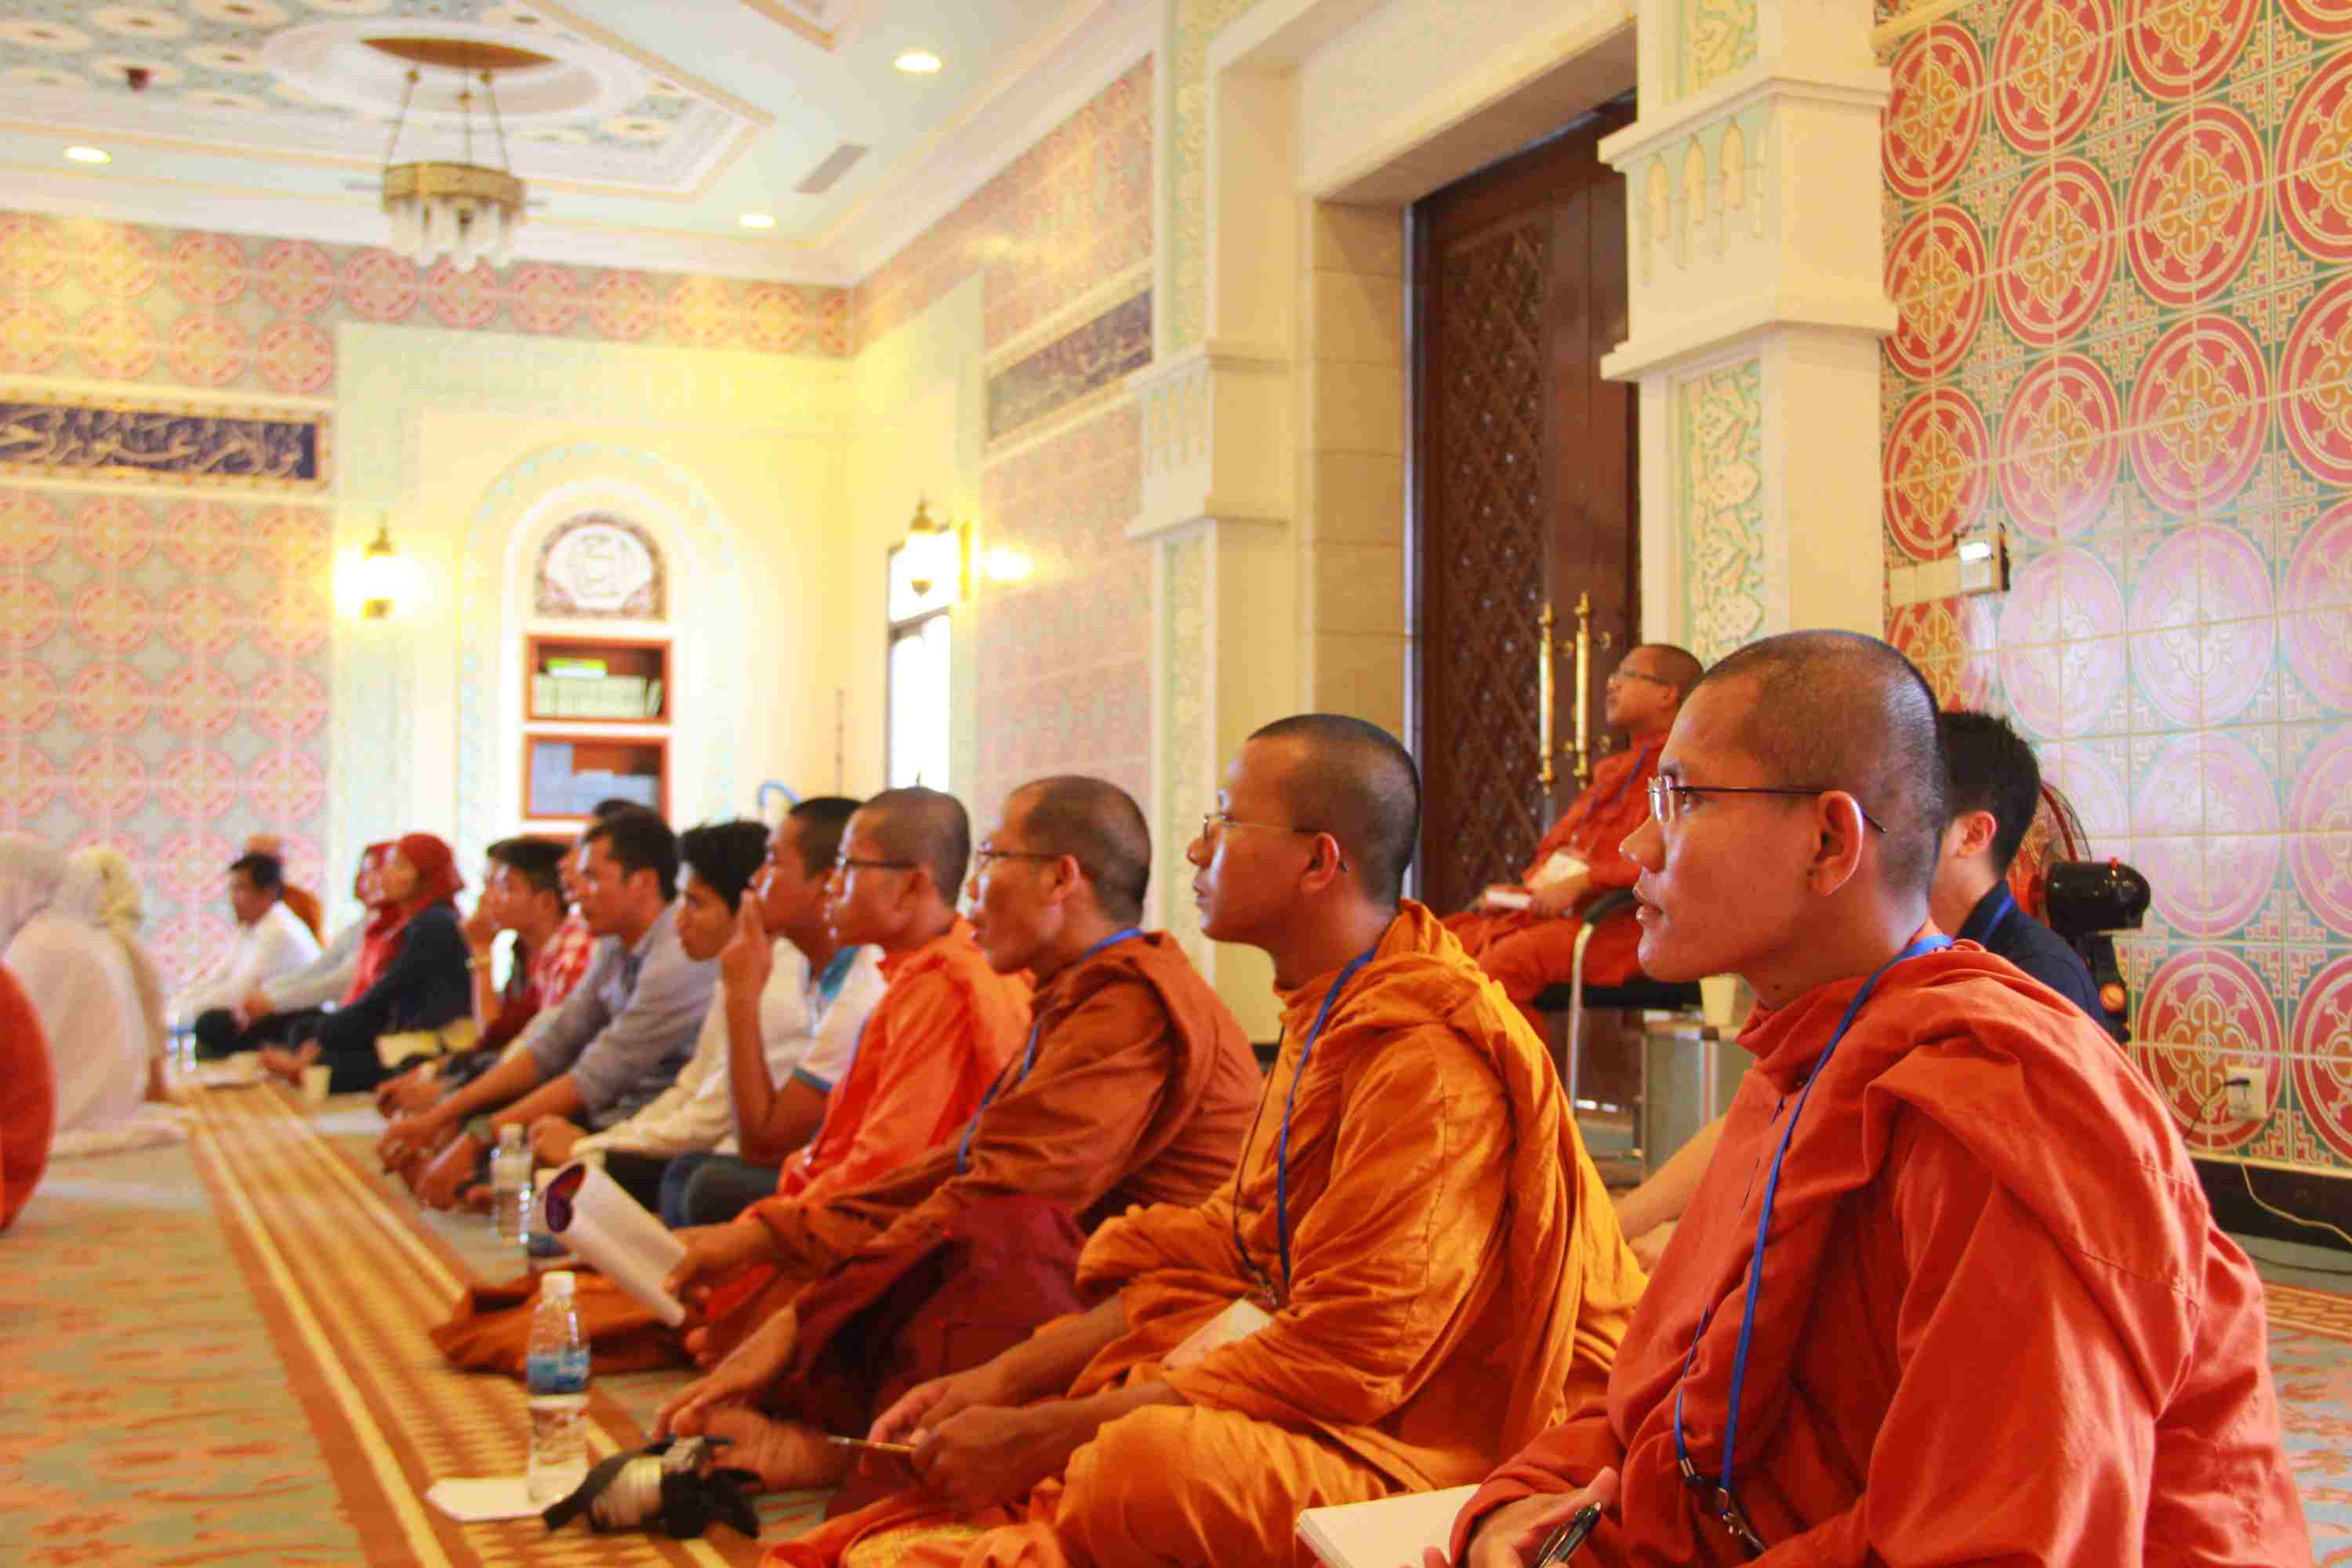 HWPL Religious Youth Peace Camp in the Kingdom of Cambodia